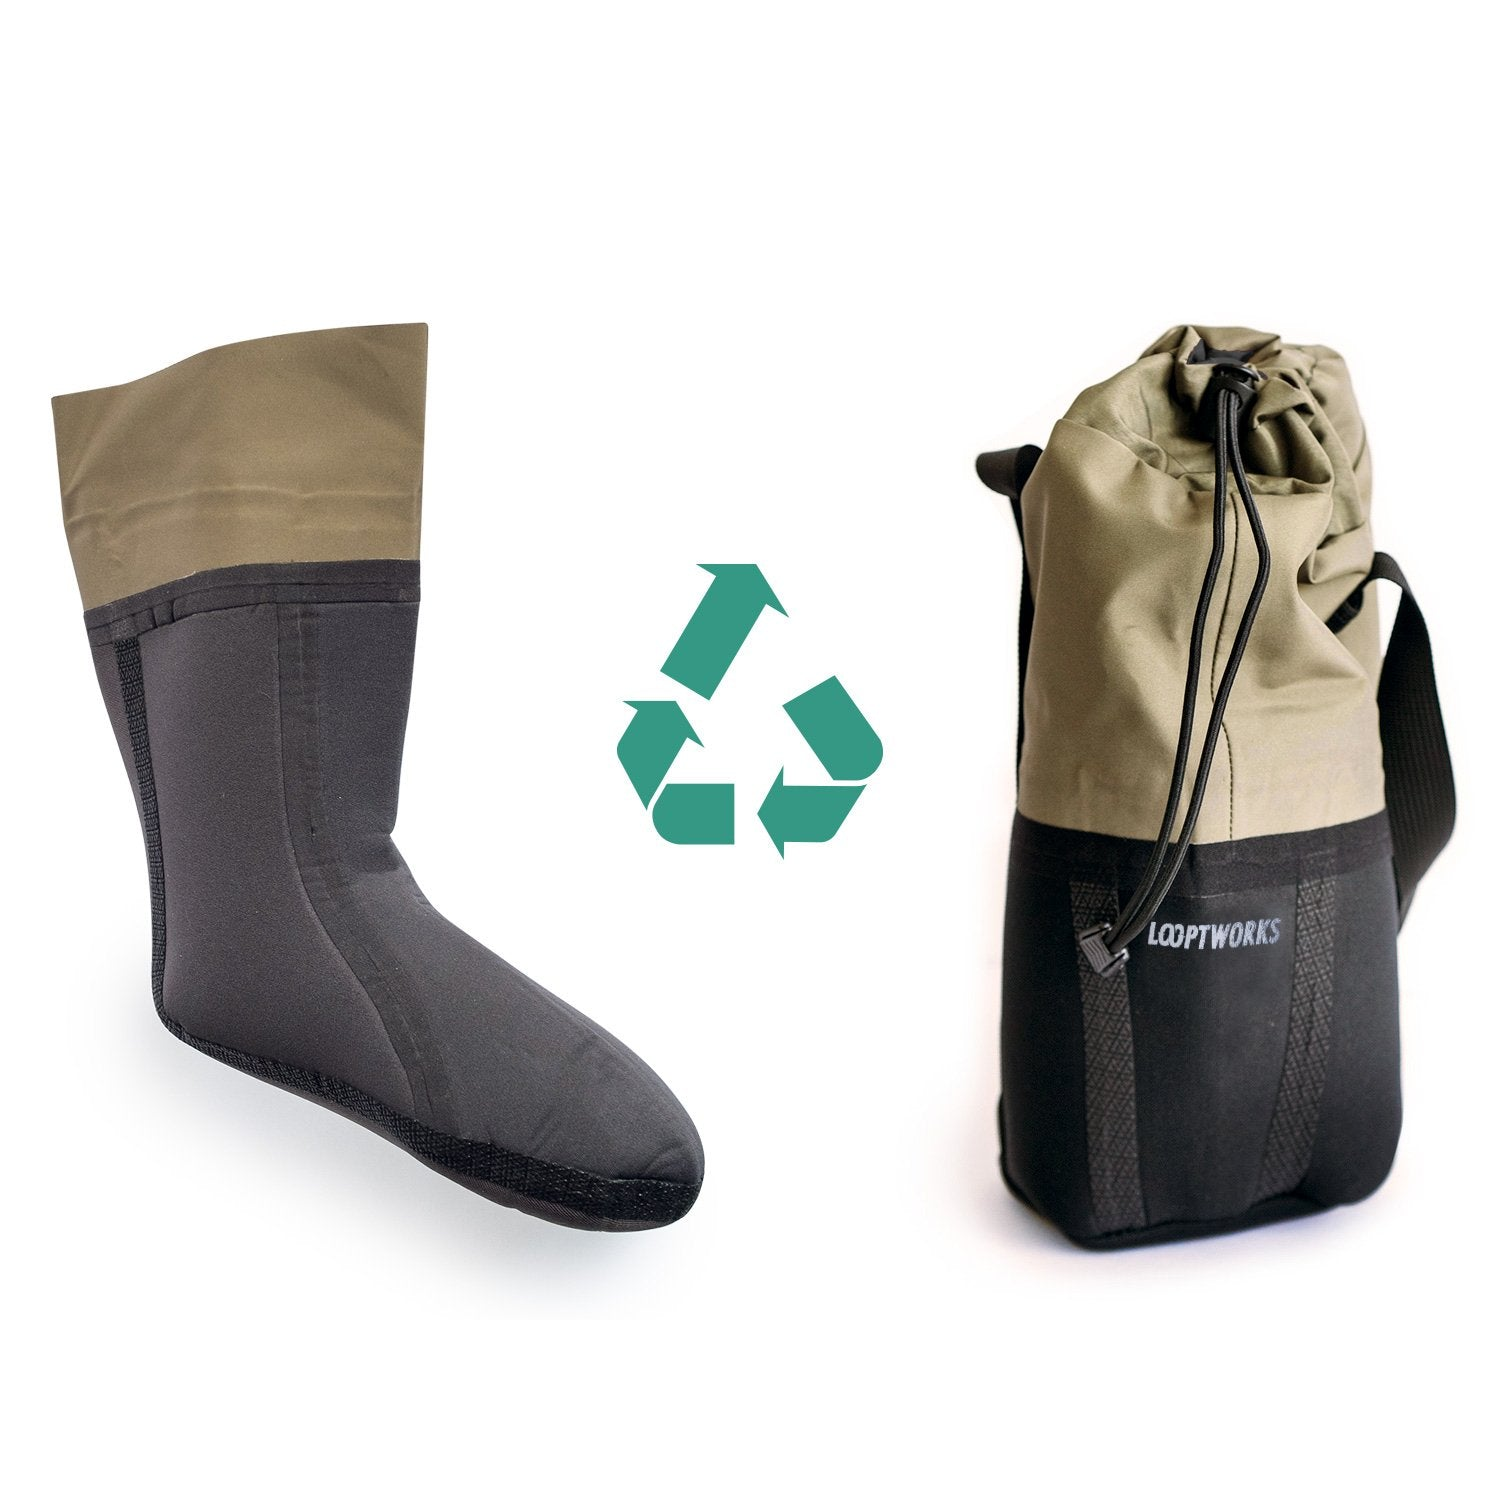 Patagonia fishing waders are given new life, upcycled into insulated growler carriers